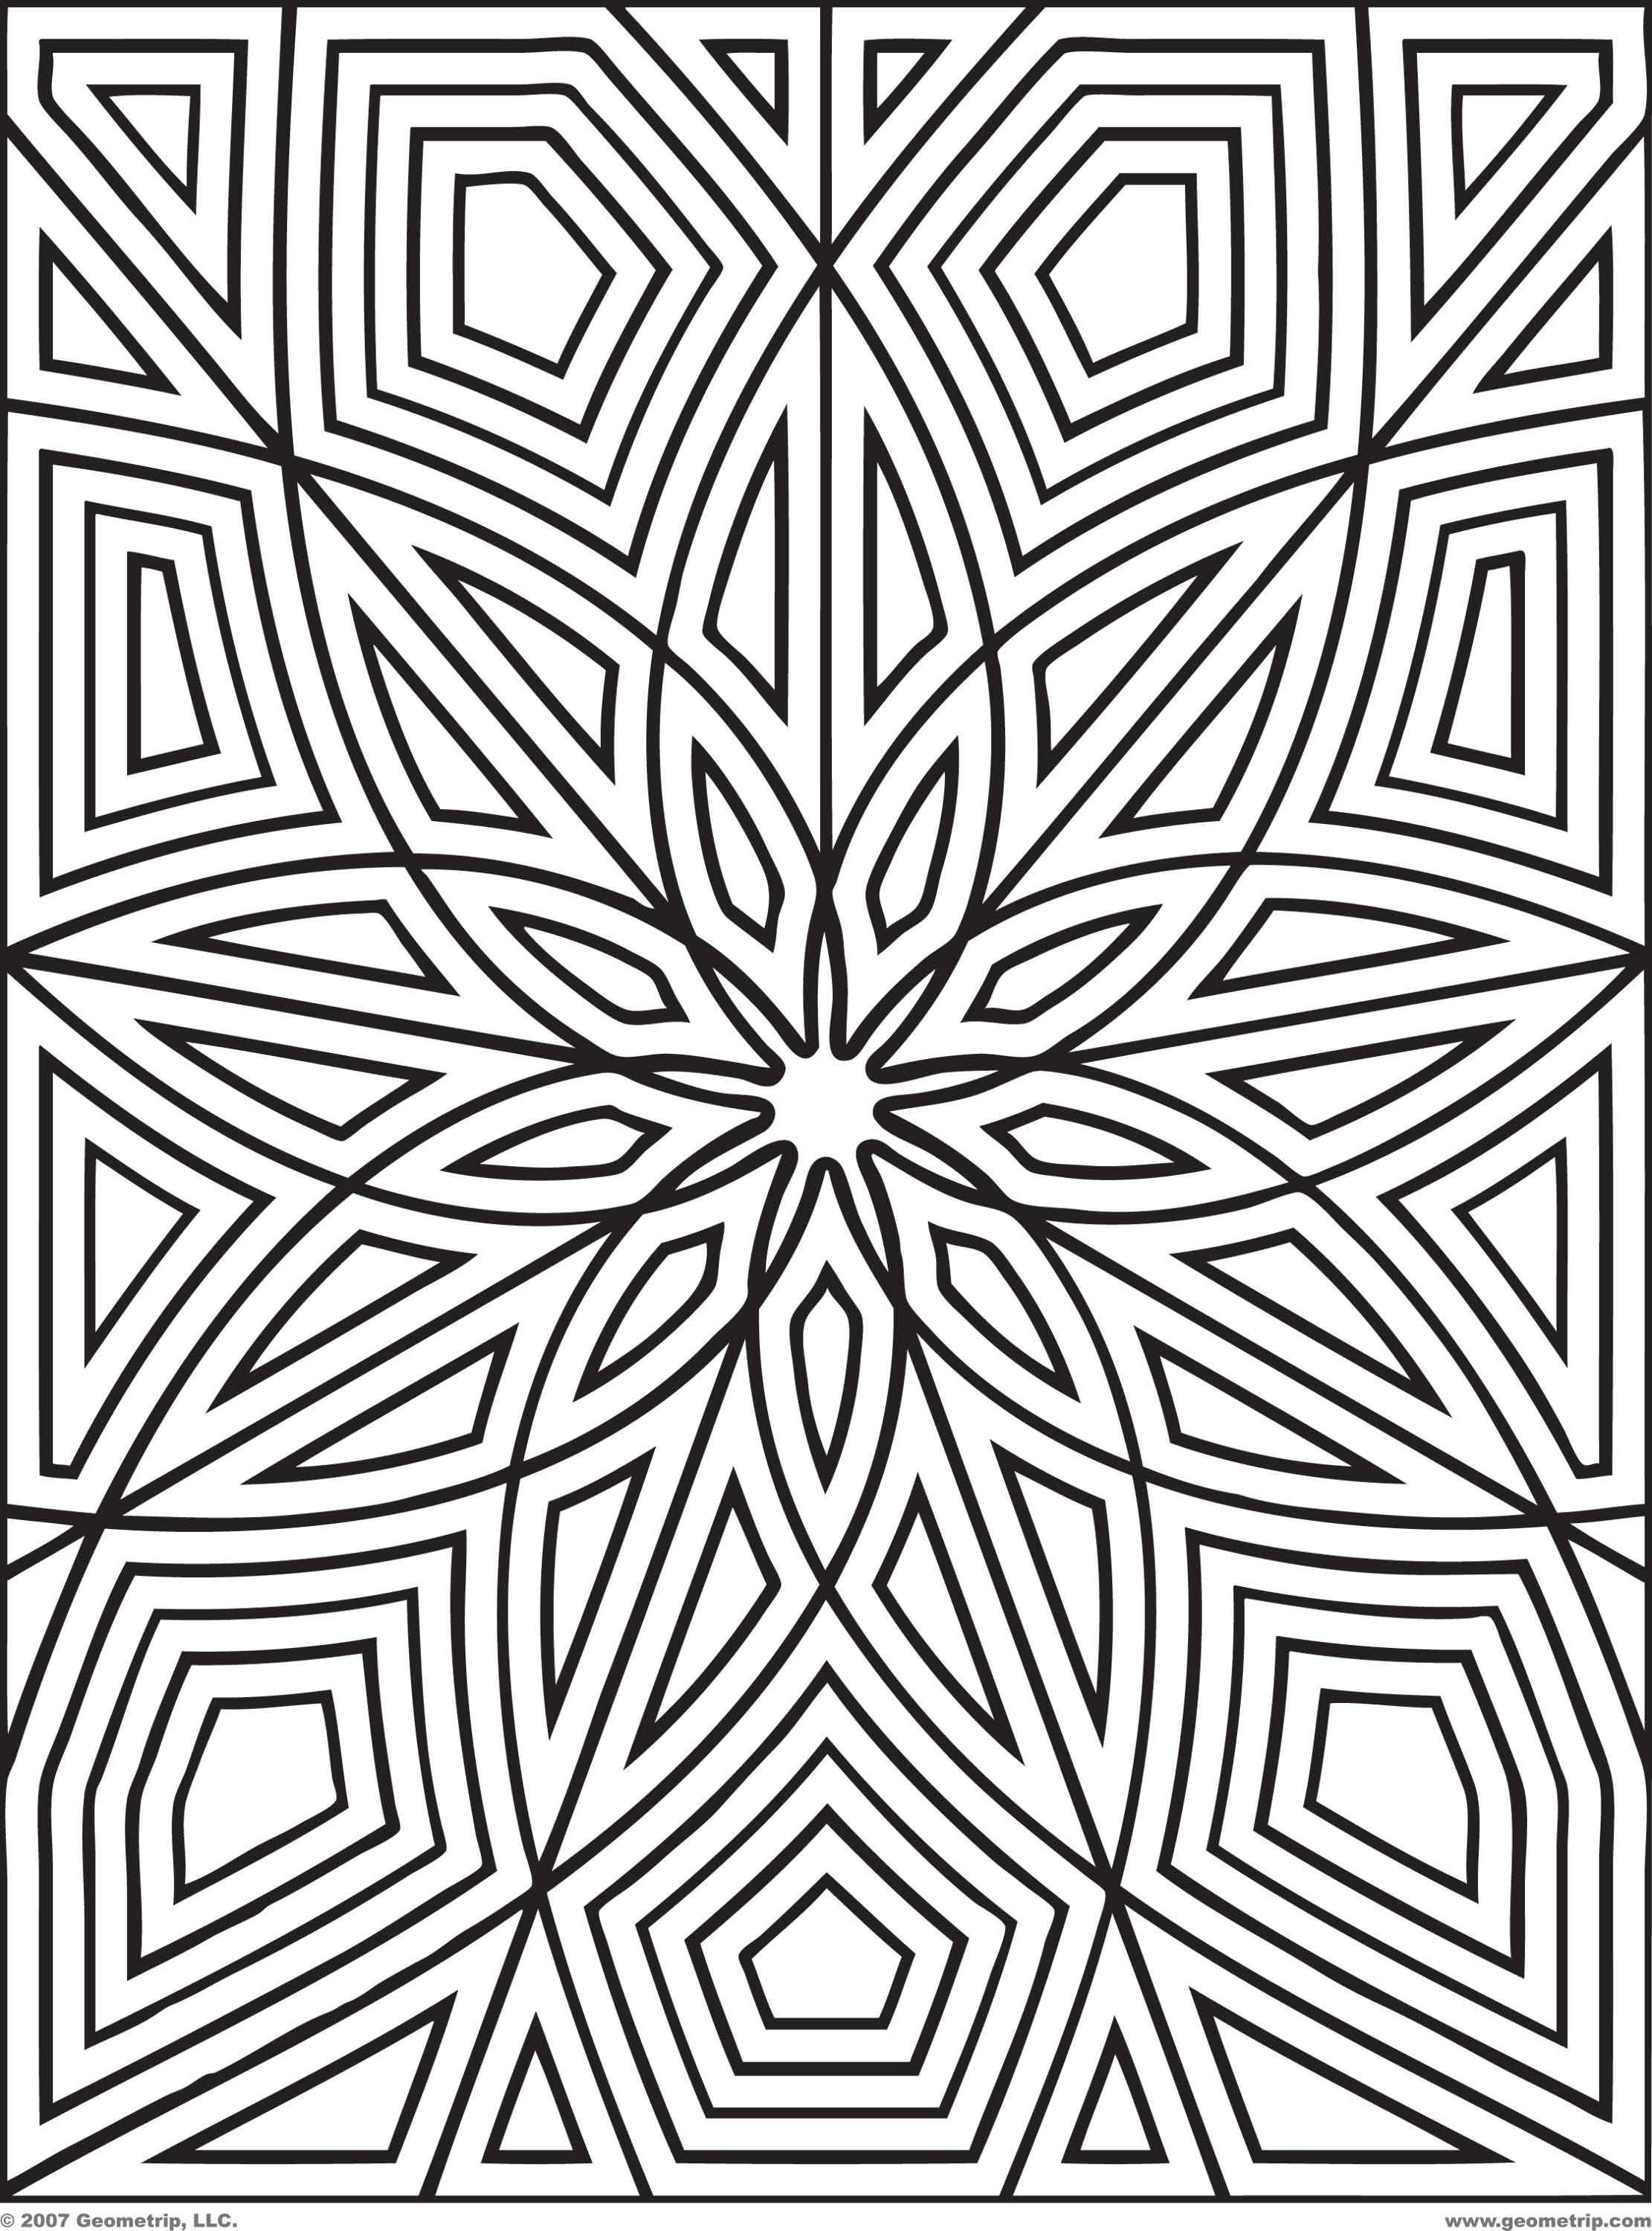 Difficult Geometric Design Coloring Pages | Rectangles: Page 2 of 2 ...